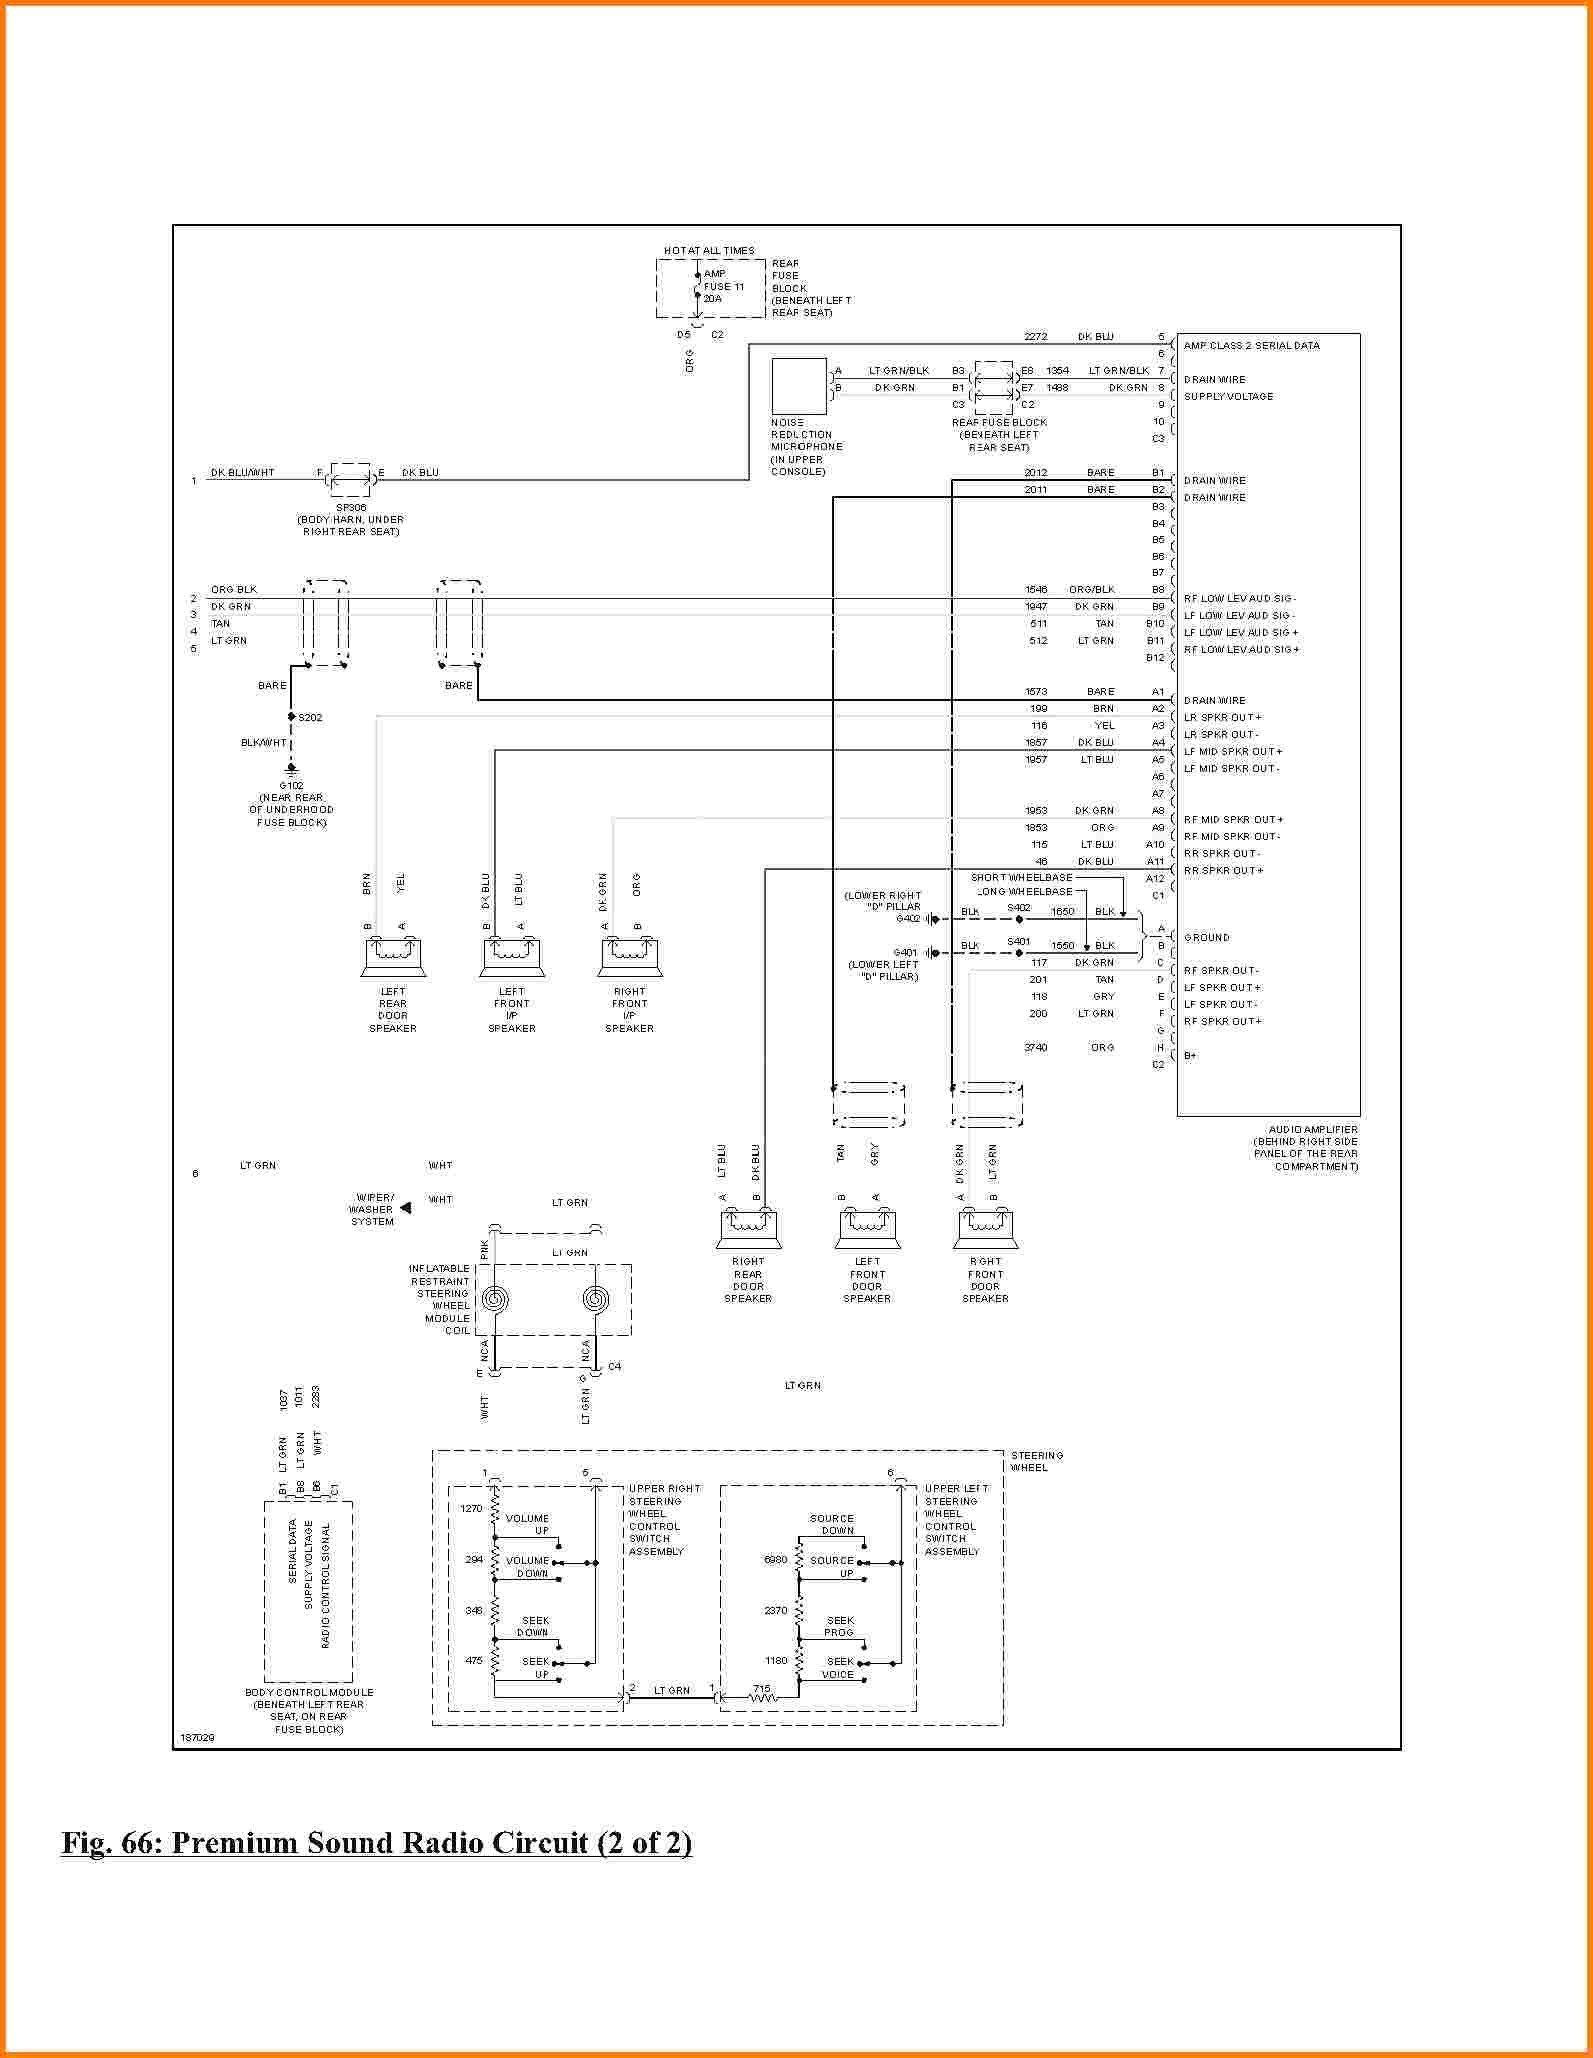 Scosche Fai 3A Wiring Diagram from 2020cadillac.com